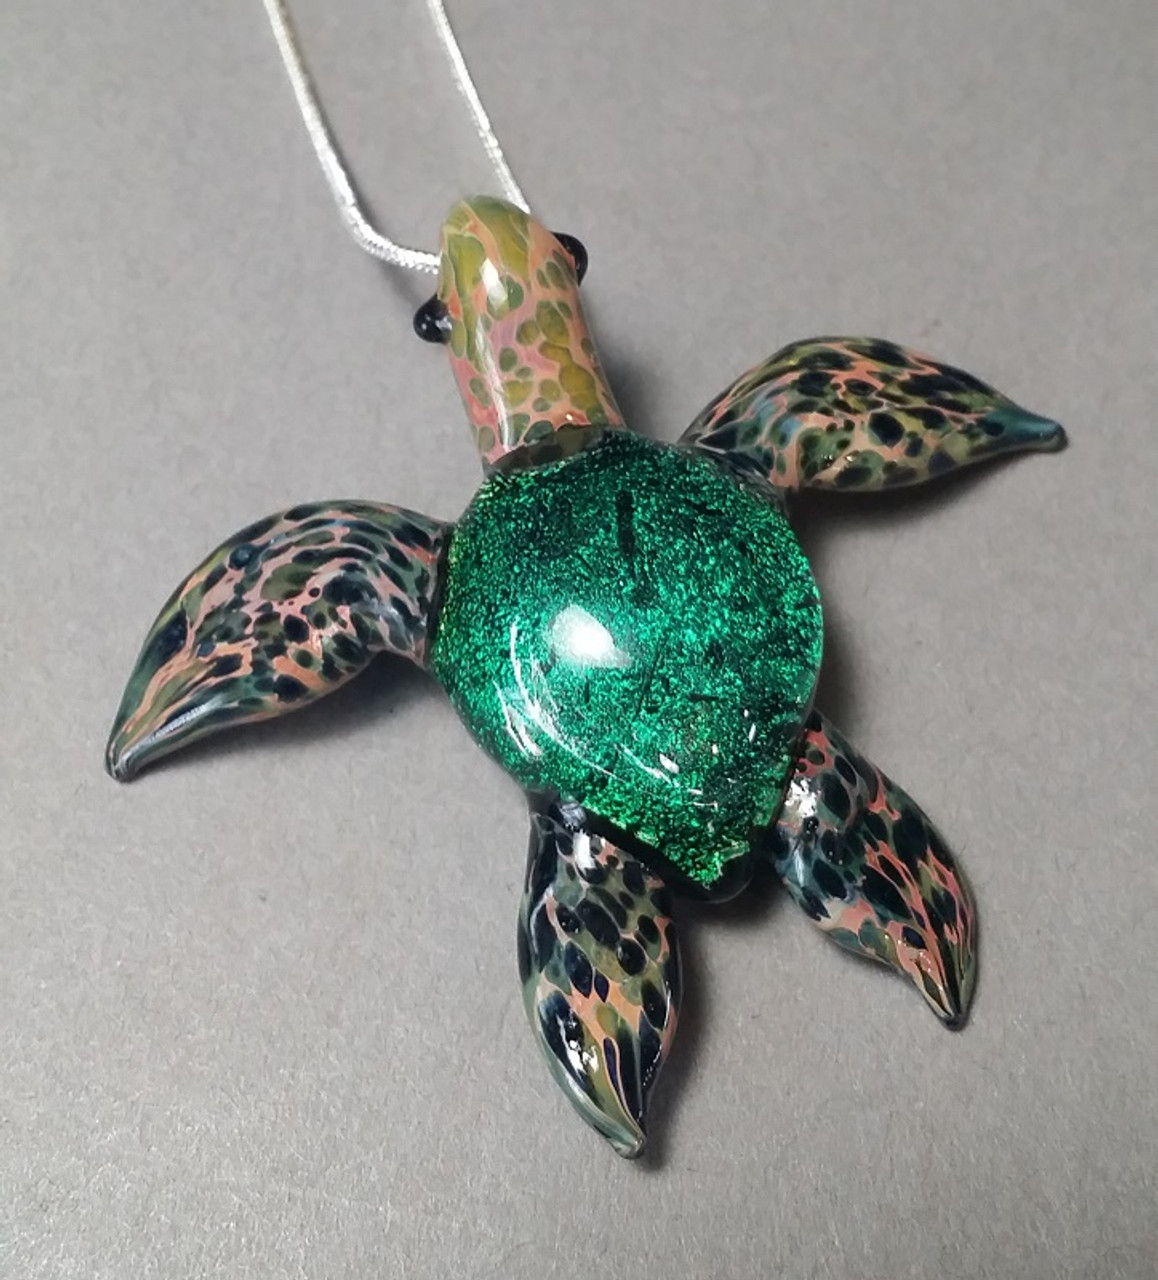 Green sea turtle pendant green sea turtle pendant with silver serpentine chain for gals aloadofball Image collections